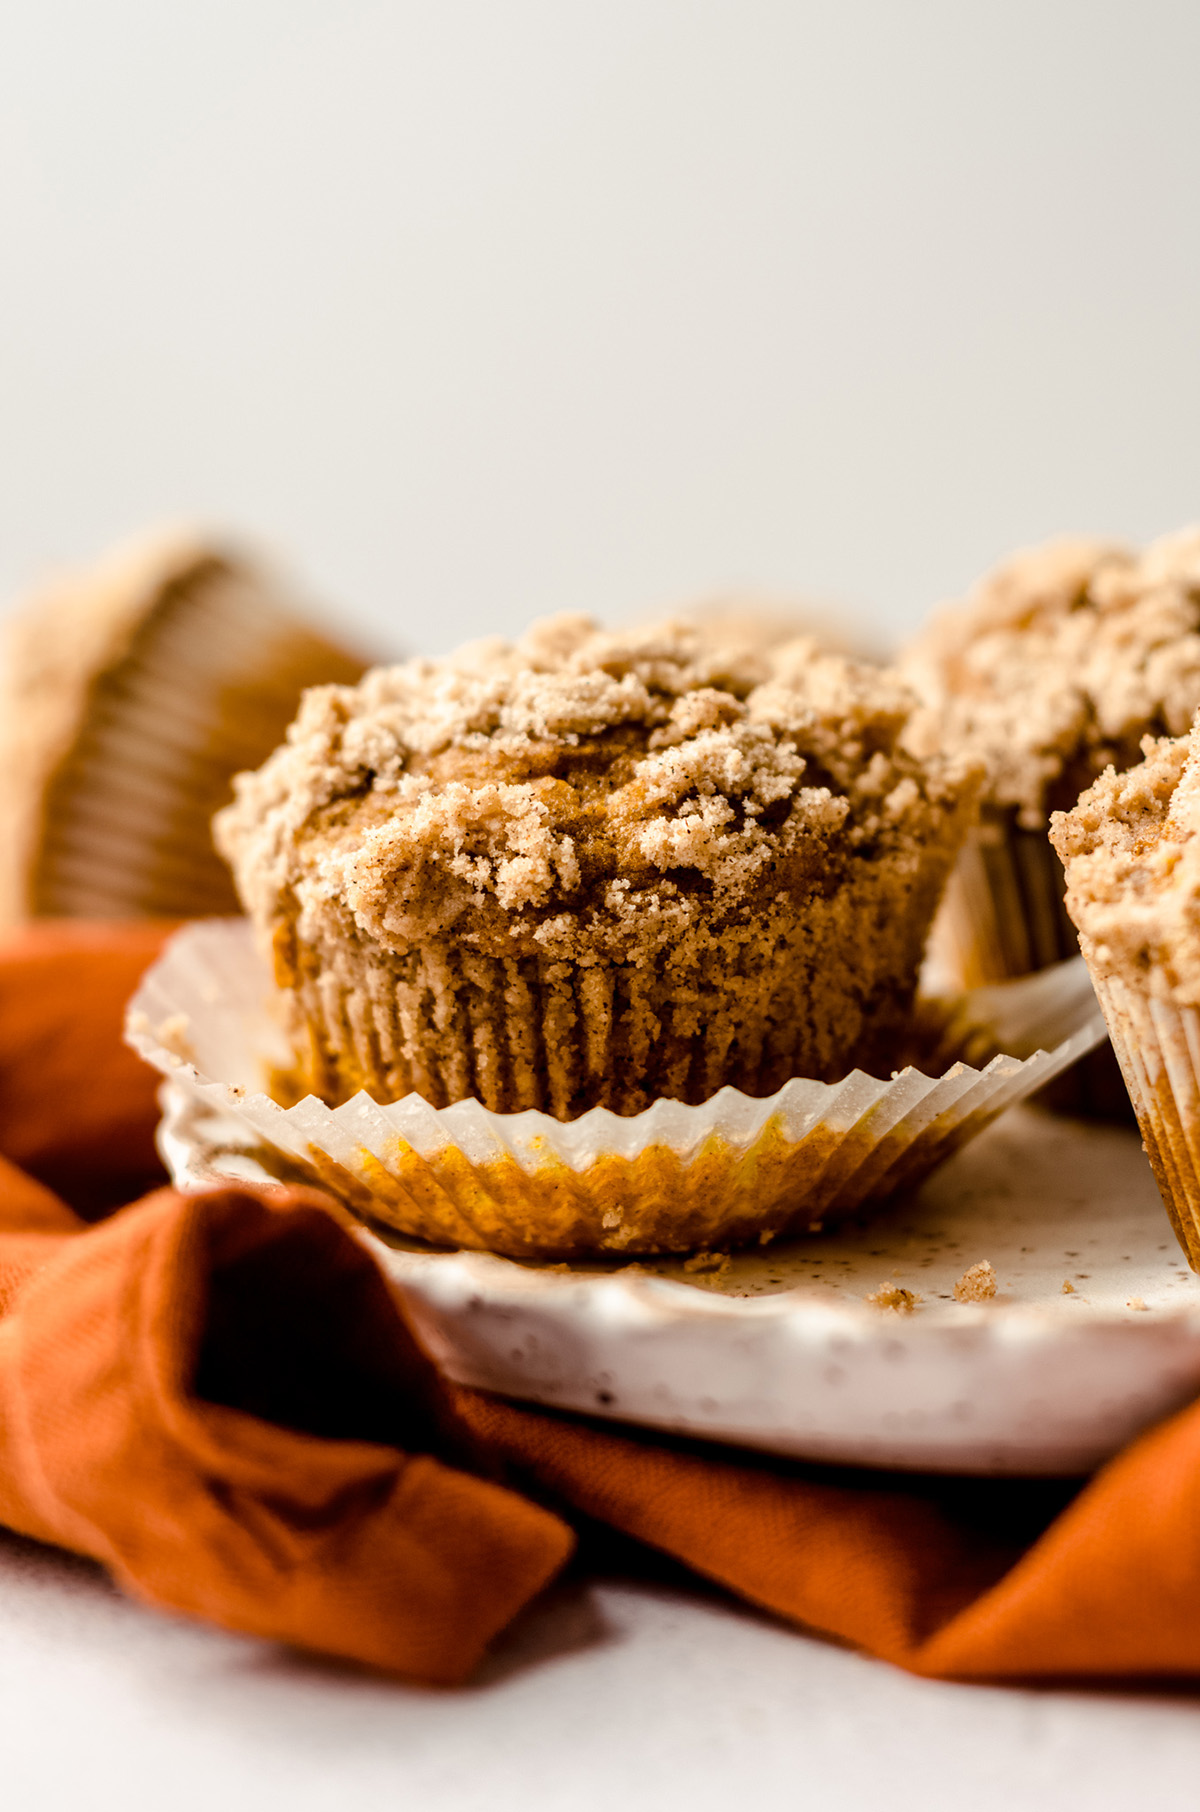 unwrapped pumpkin muffins on a plate